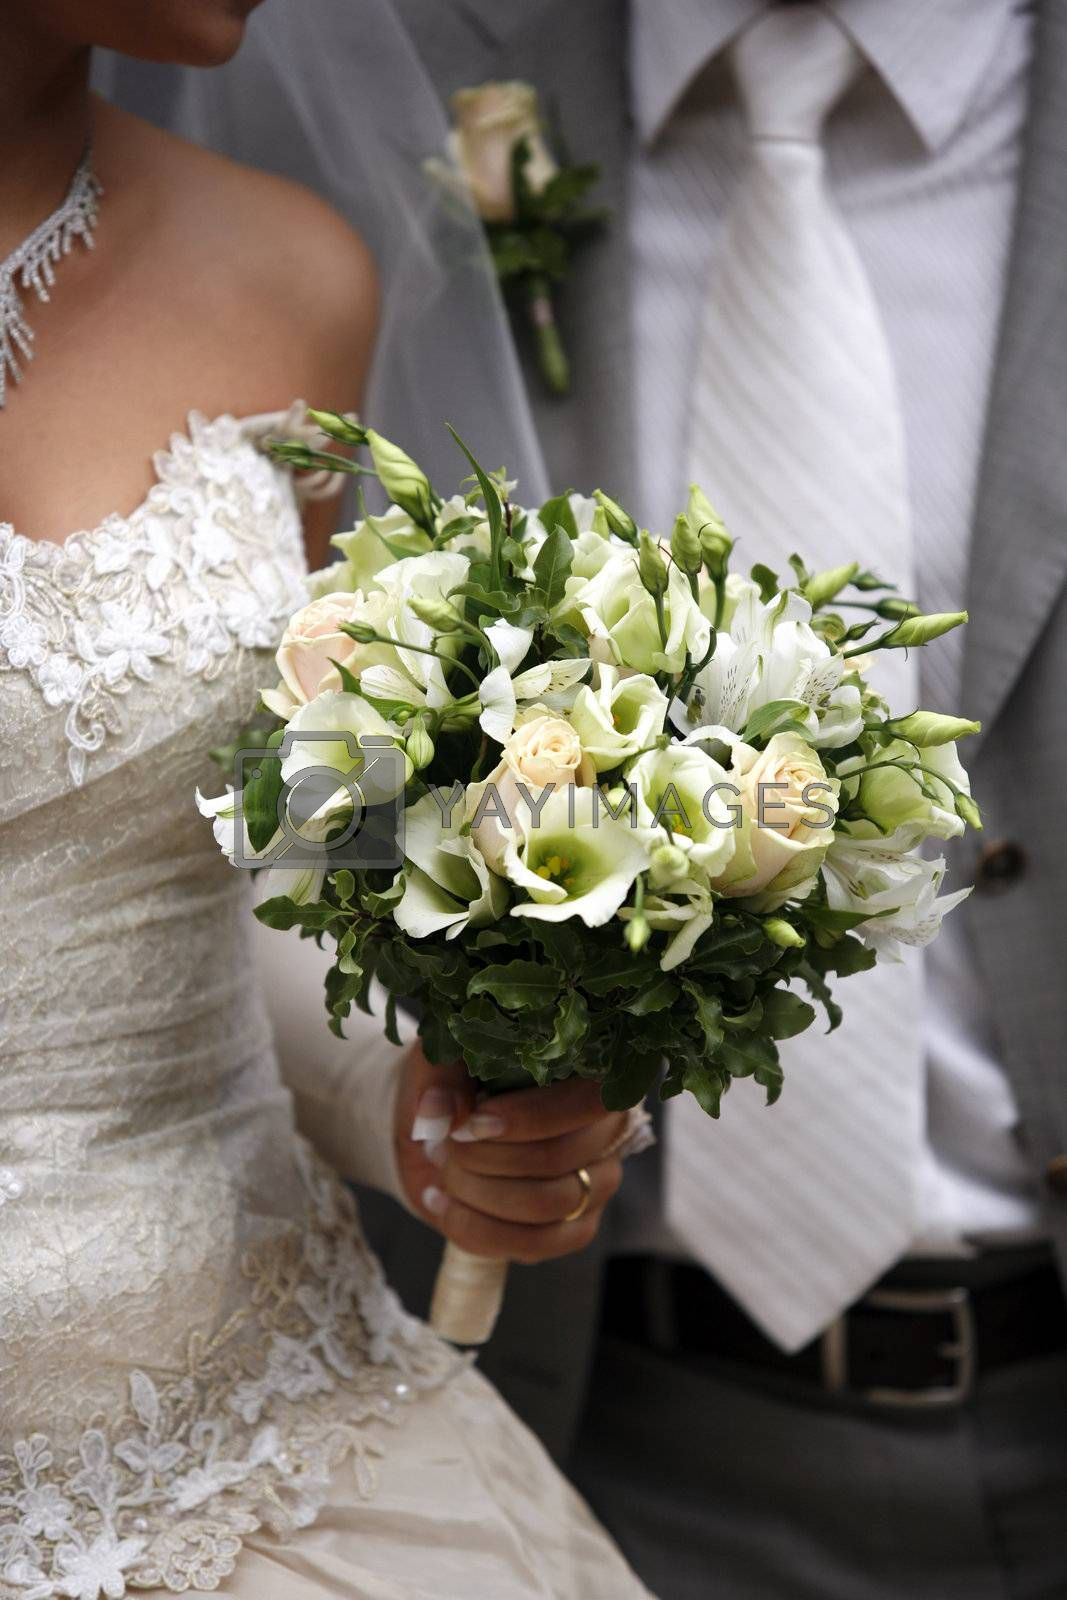 Bouquet of flowers on a background of a dress of the bride and a suit the groom.